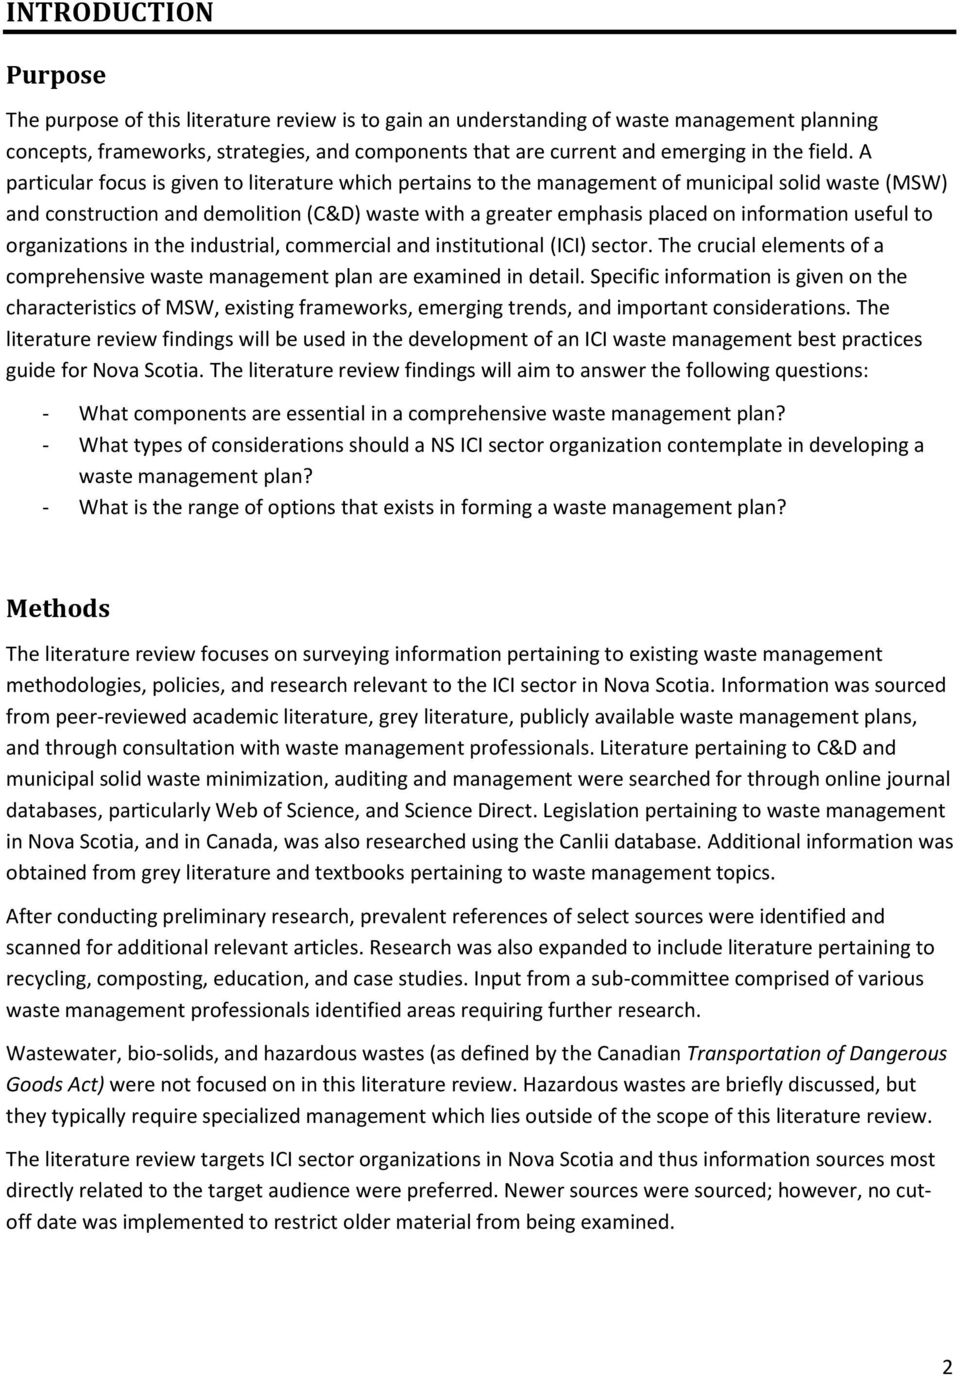 Literature review on solid waste management